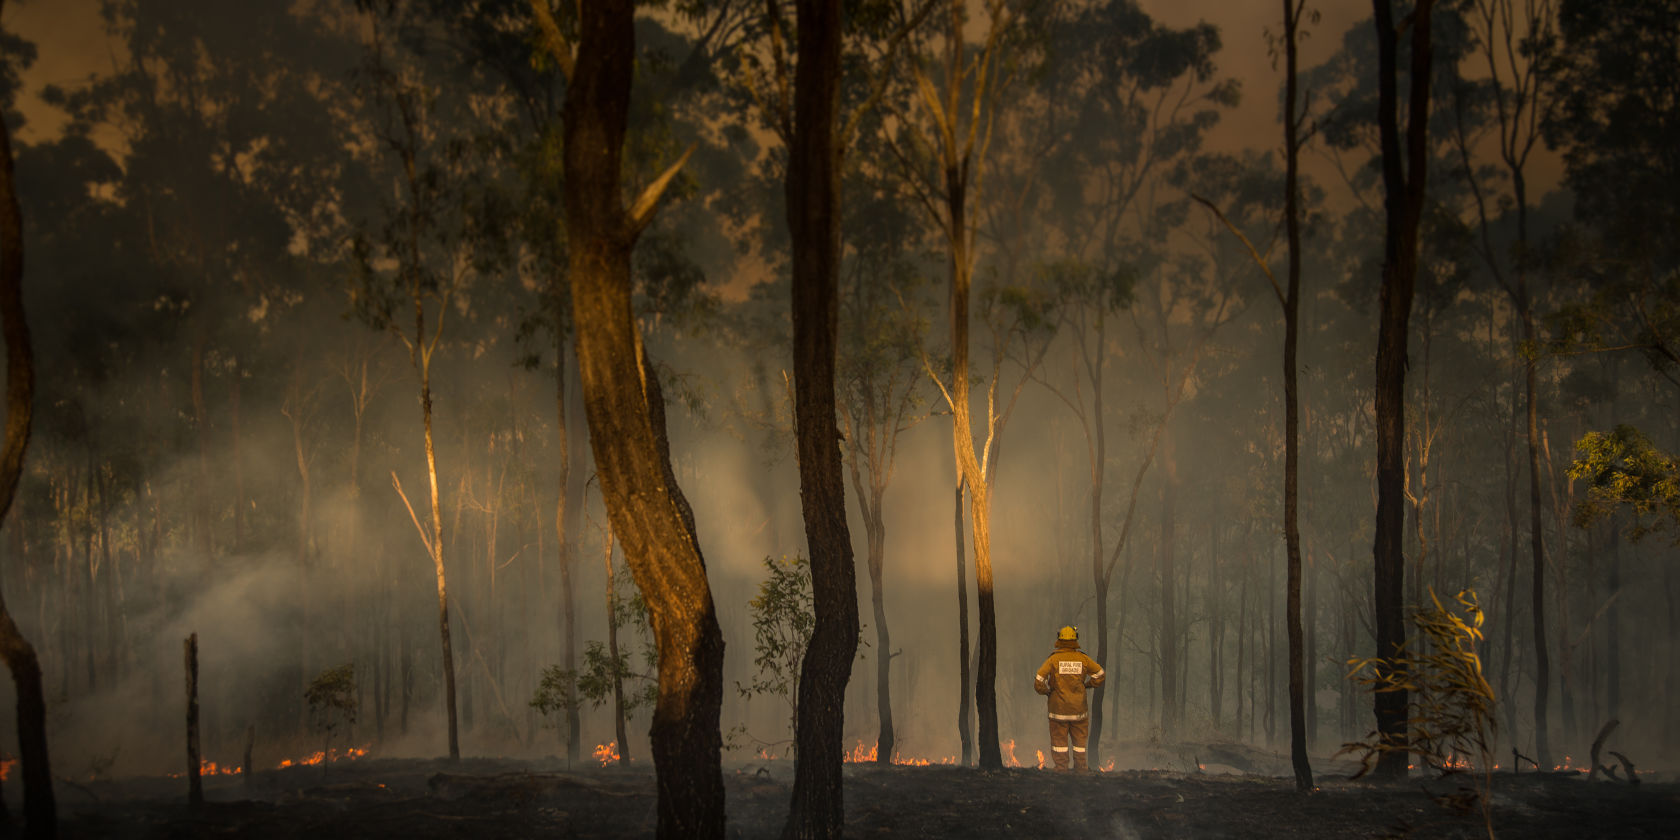 Donation to strengthen bushfire communications and readiness